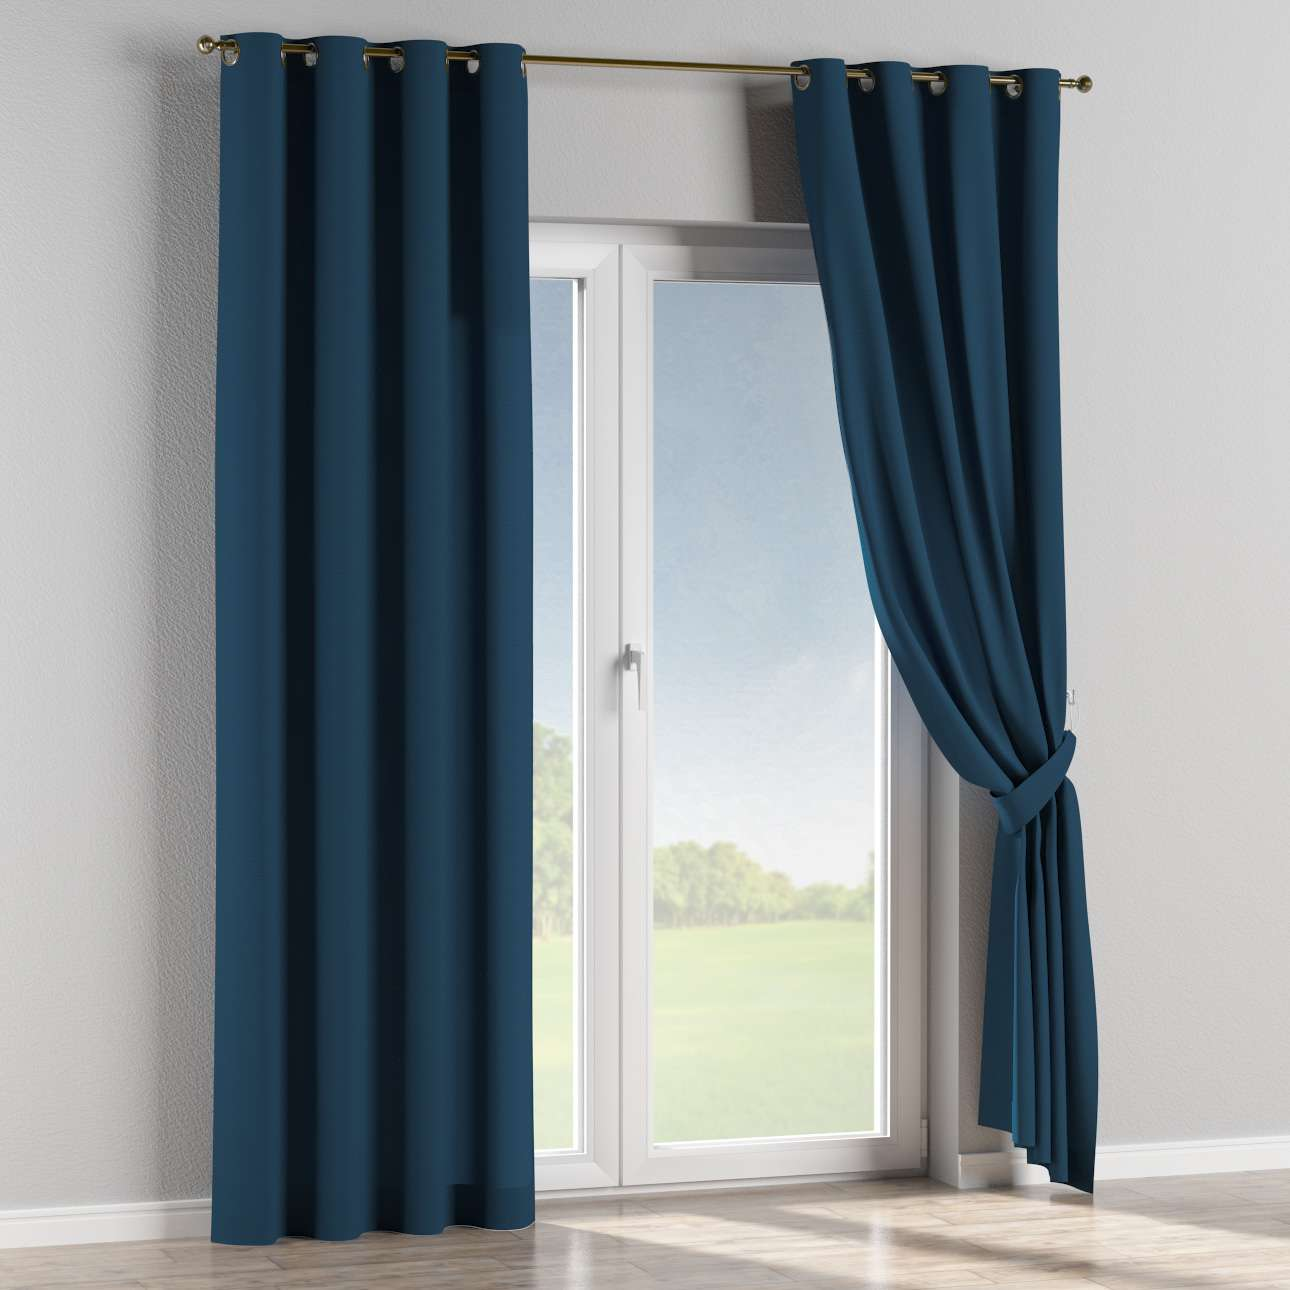 Eyelet curtains 130 x 260 cm (51 x 102 inch) in collection Cotton Panama, fabric: 702-30